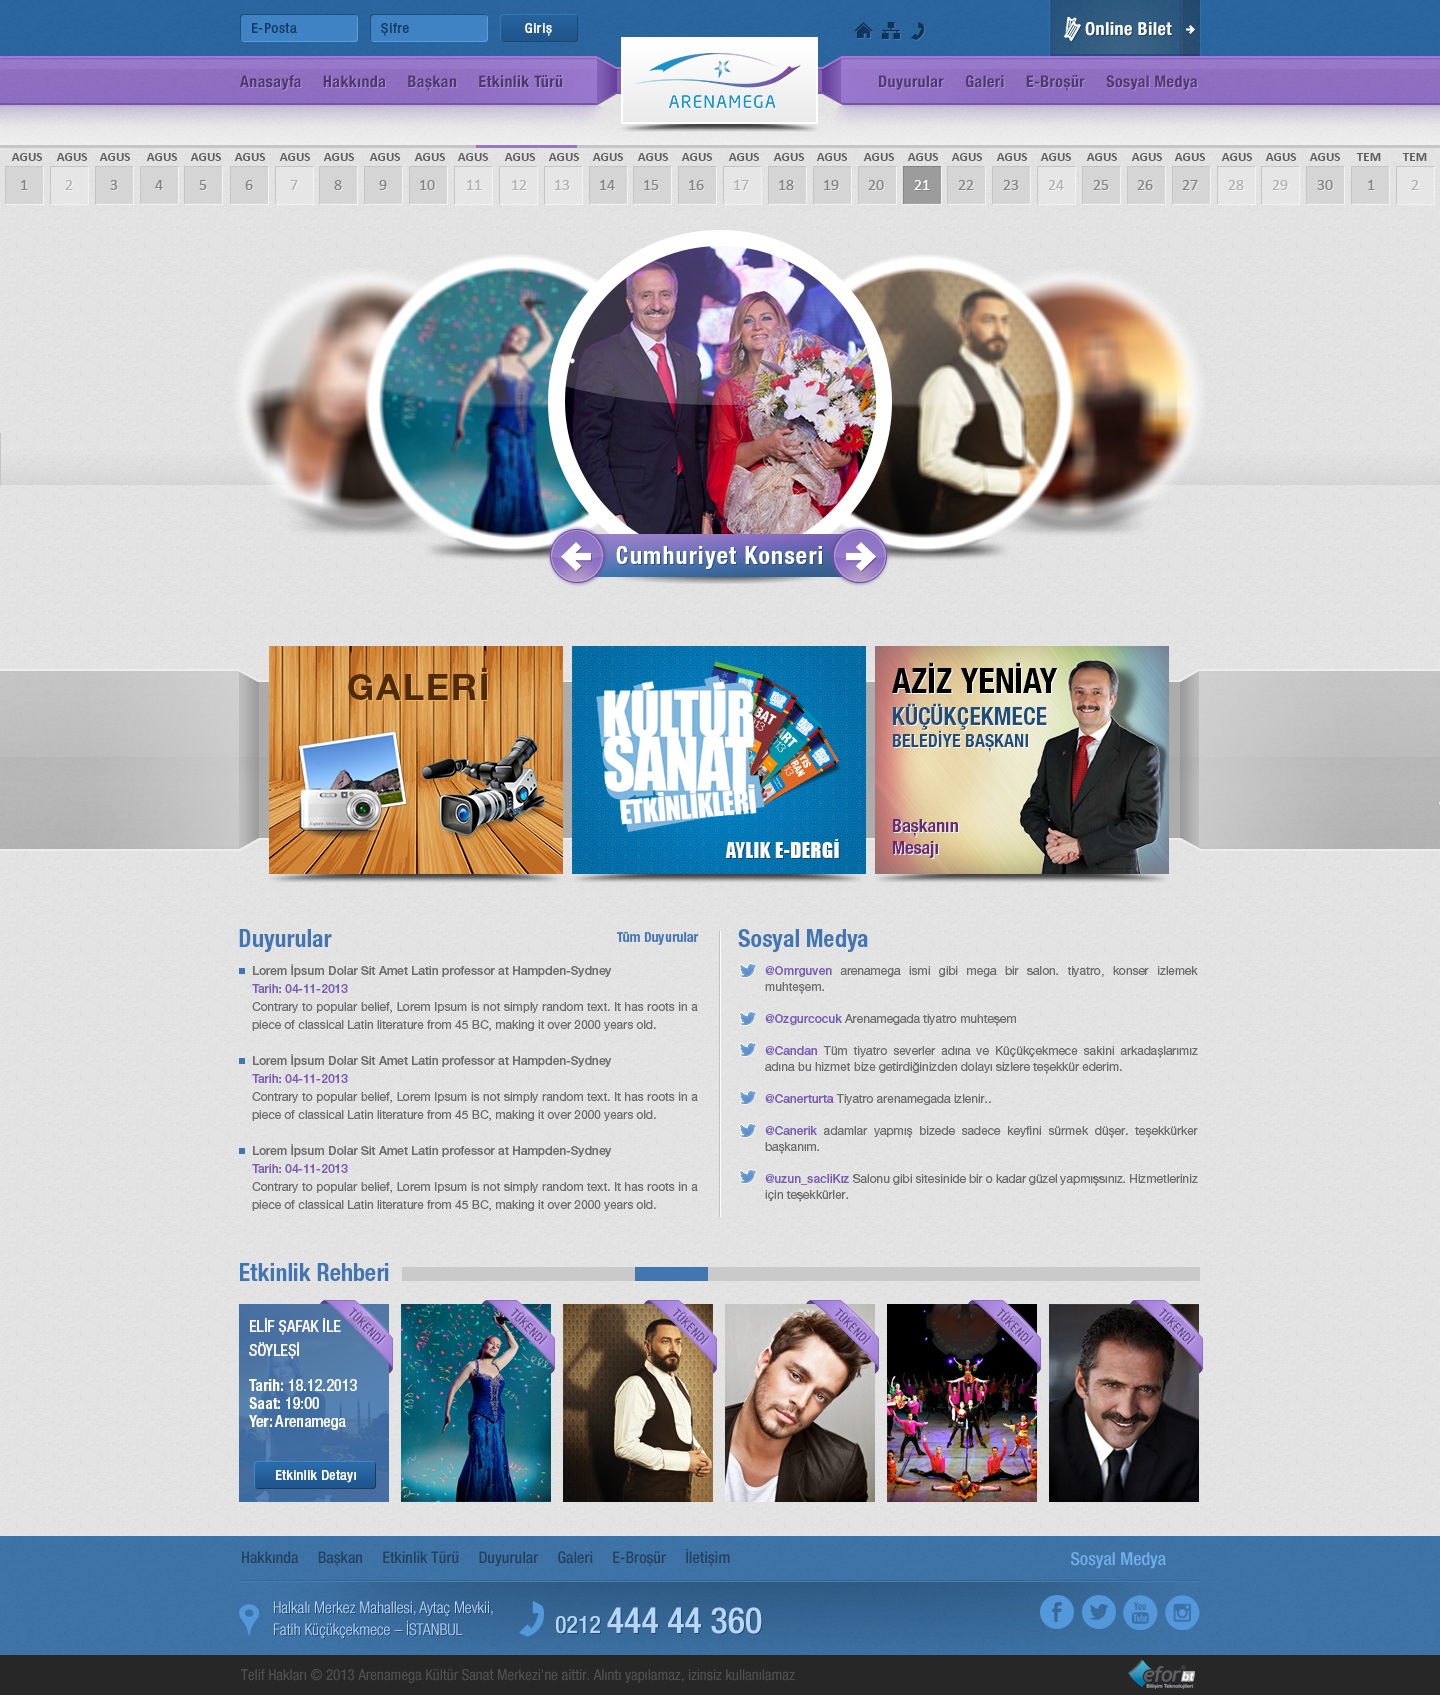 Arenamega Cultural Center Website by omrguven